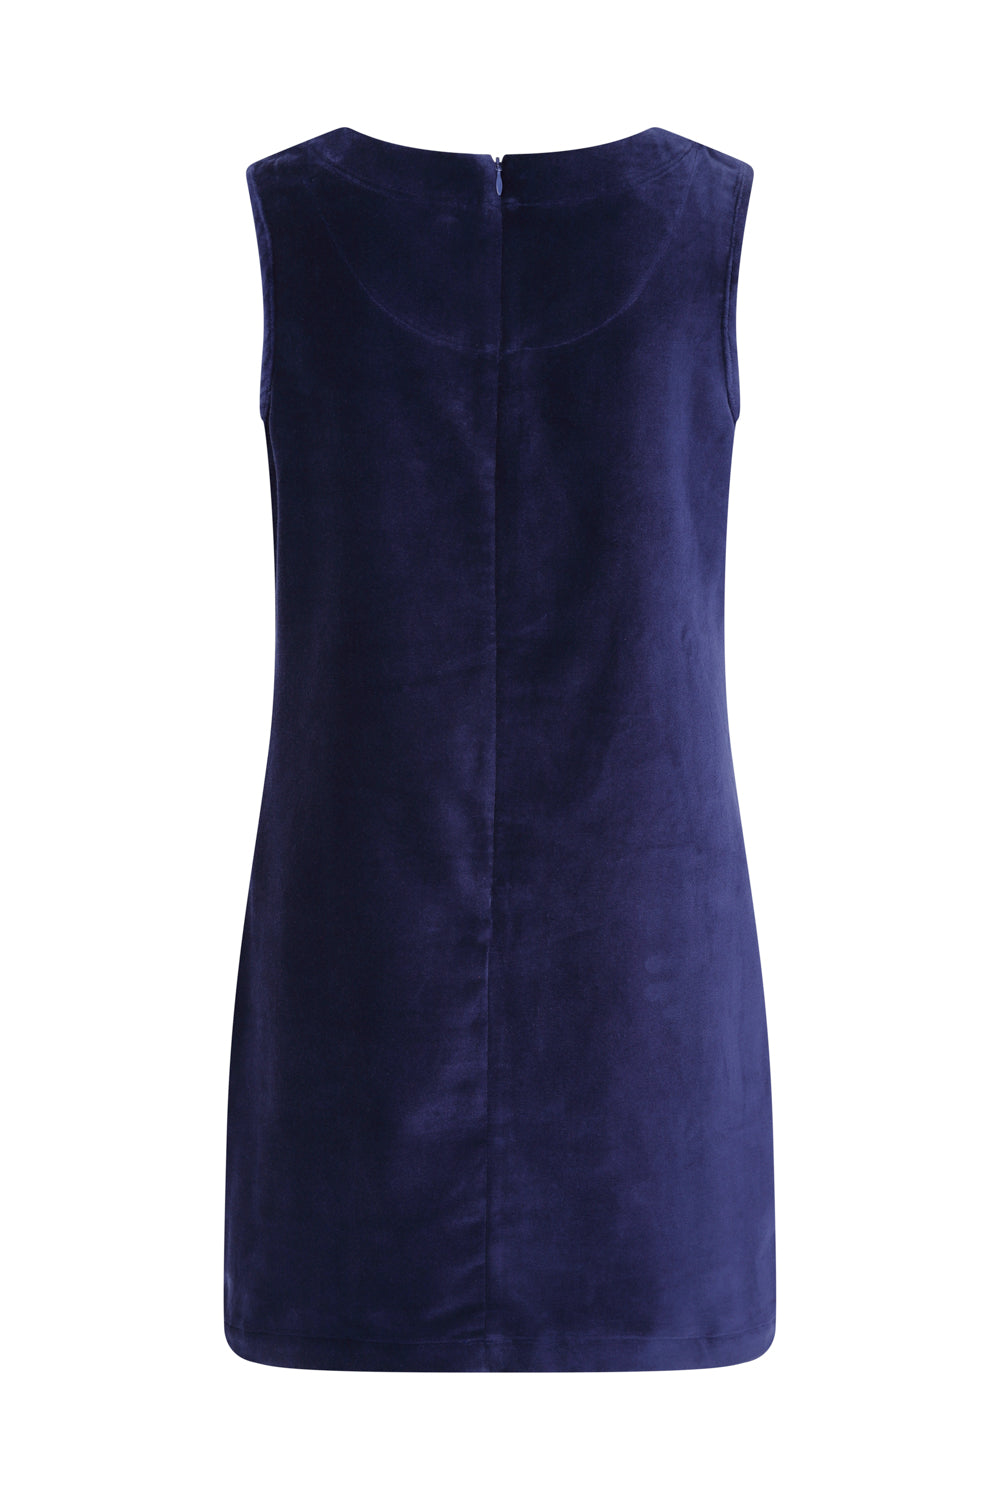 Eastern Dress - Blue Solid